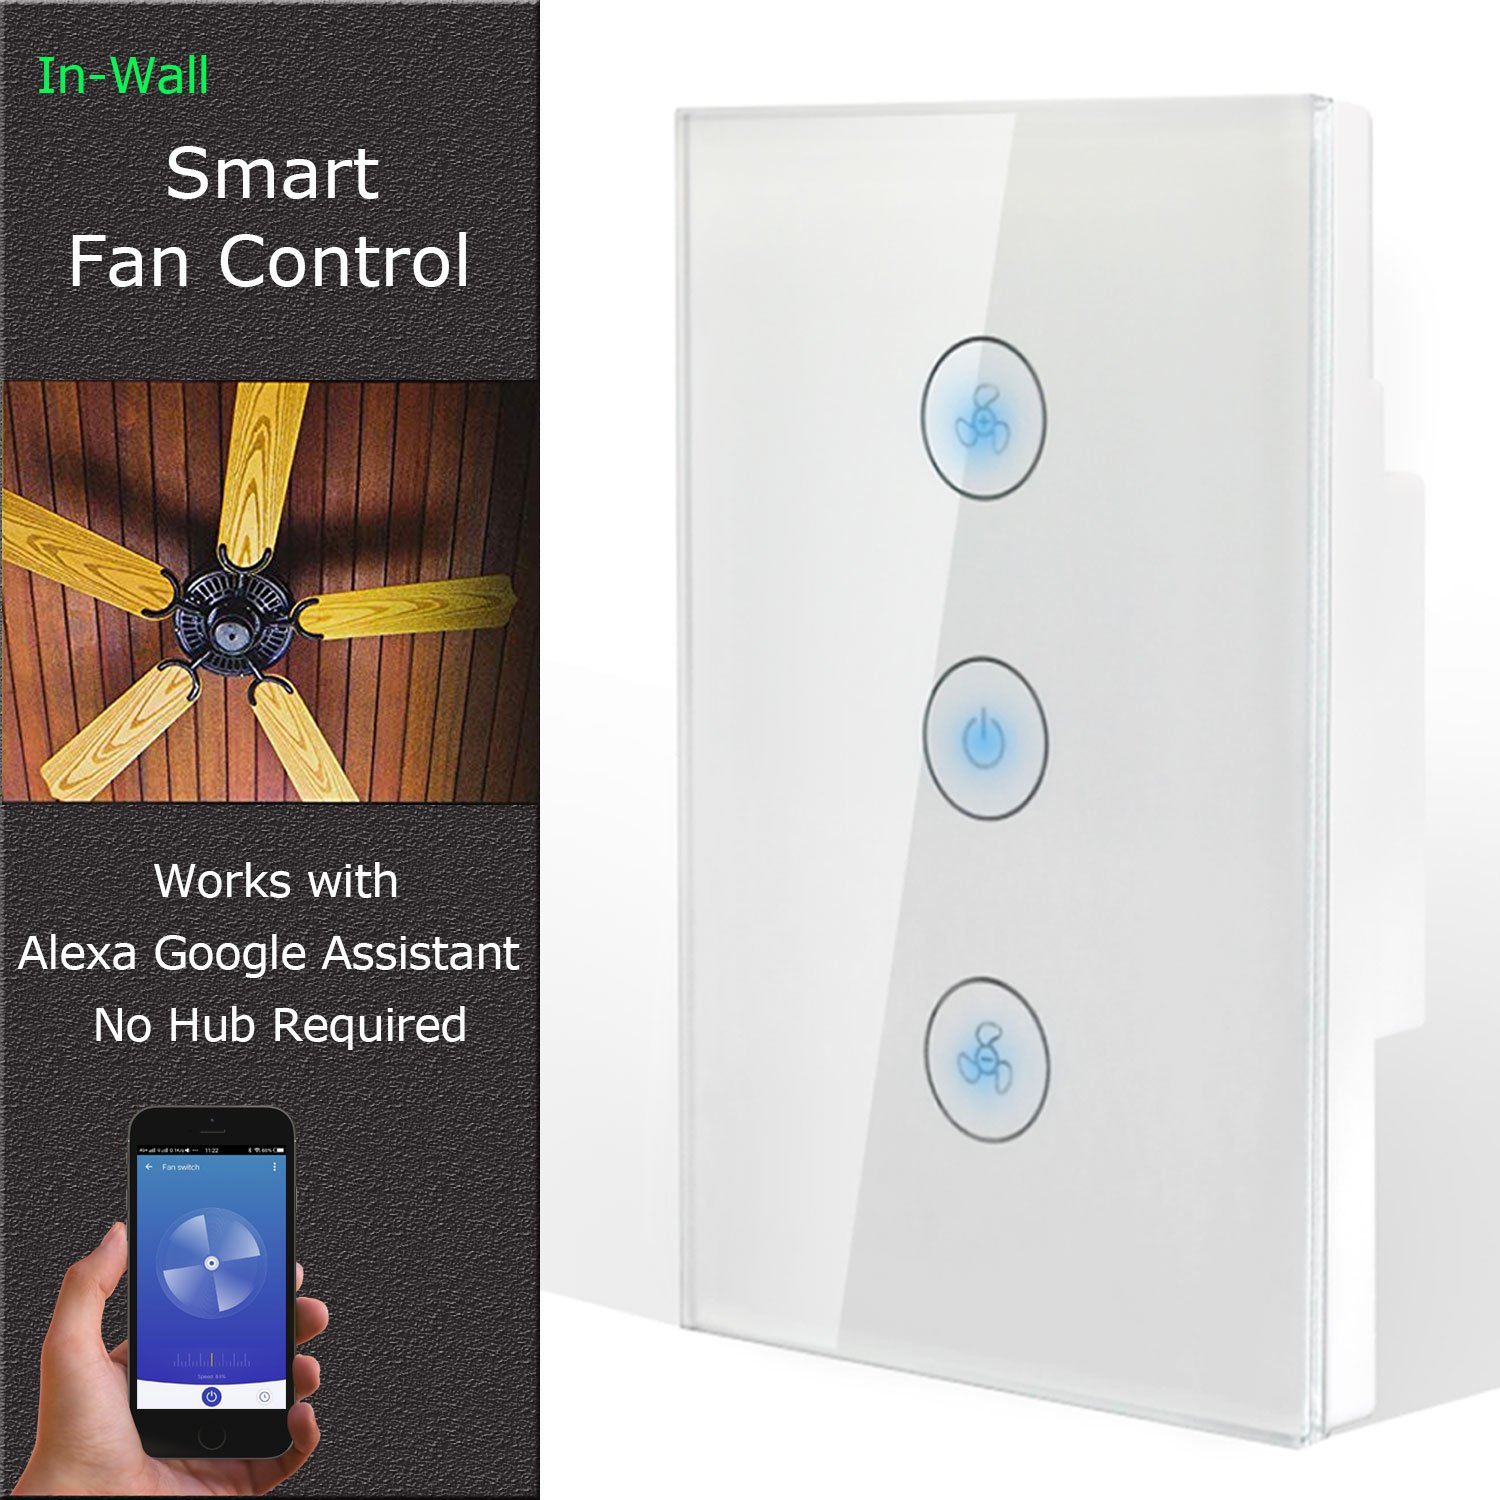 Wifi Ceiling Fan Regulator Switch/Smart Wireless Wifi Fan Switch Compatible with Alexa/GoogleHome/IFTTT